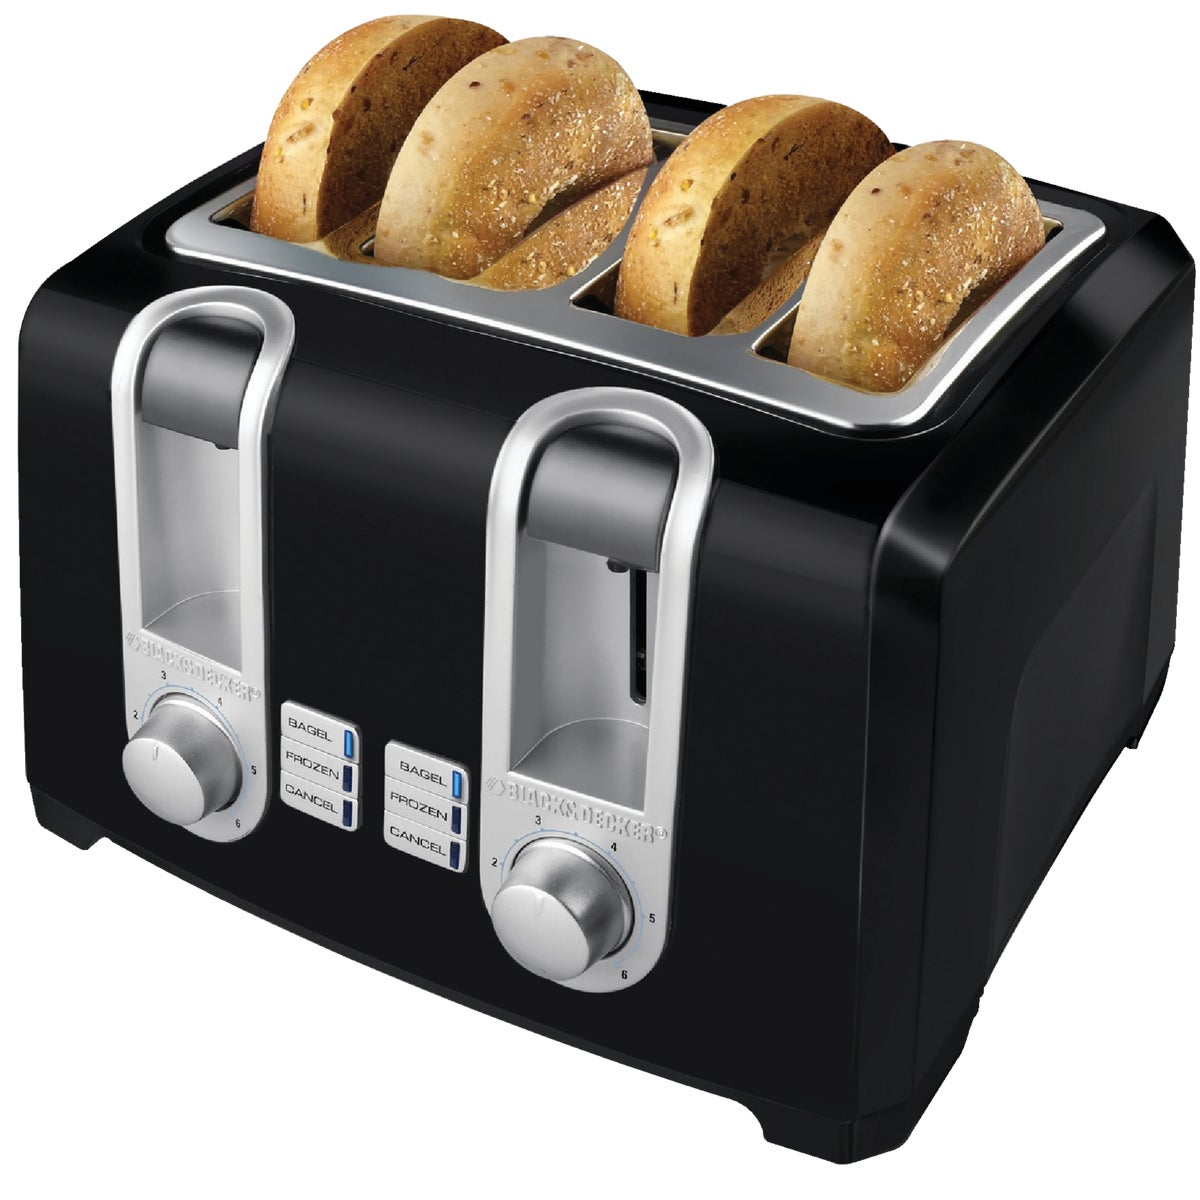 4-SLICE BLK/CHRM TOASTER